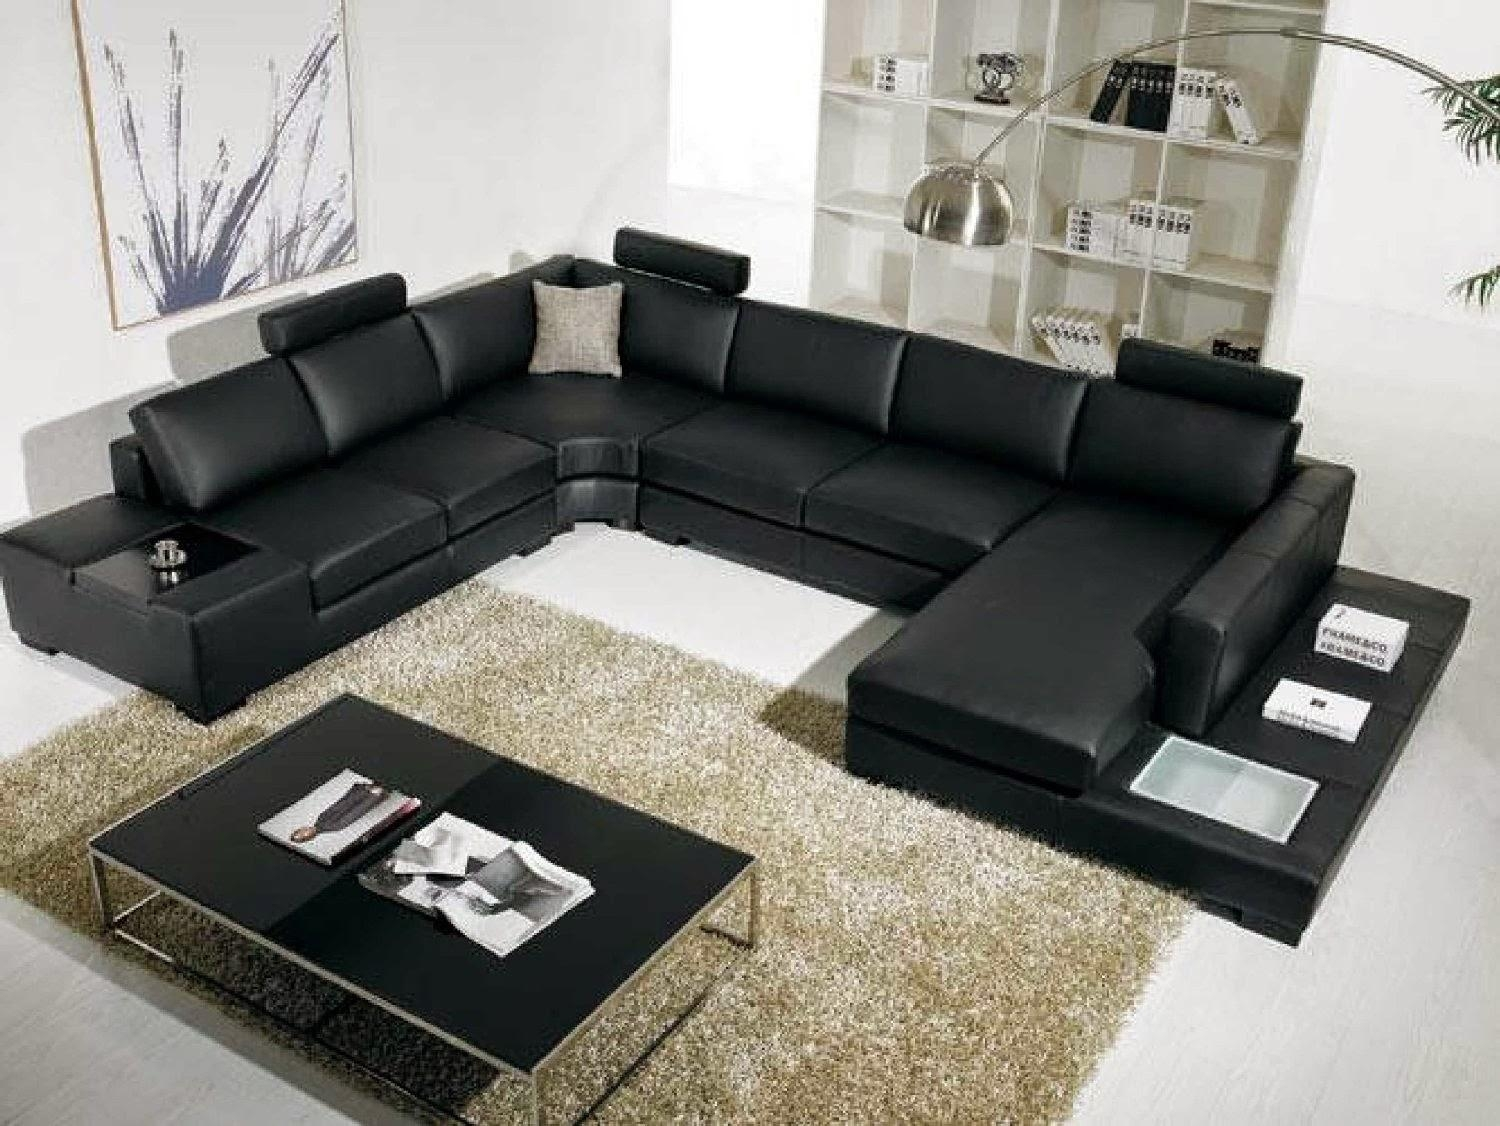 Elegant Leather Sectional Sofas On Sale 37 On Giant Sectional Sofa Throughout Giant Sofas (View 19 of 20)